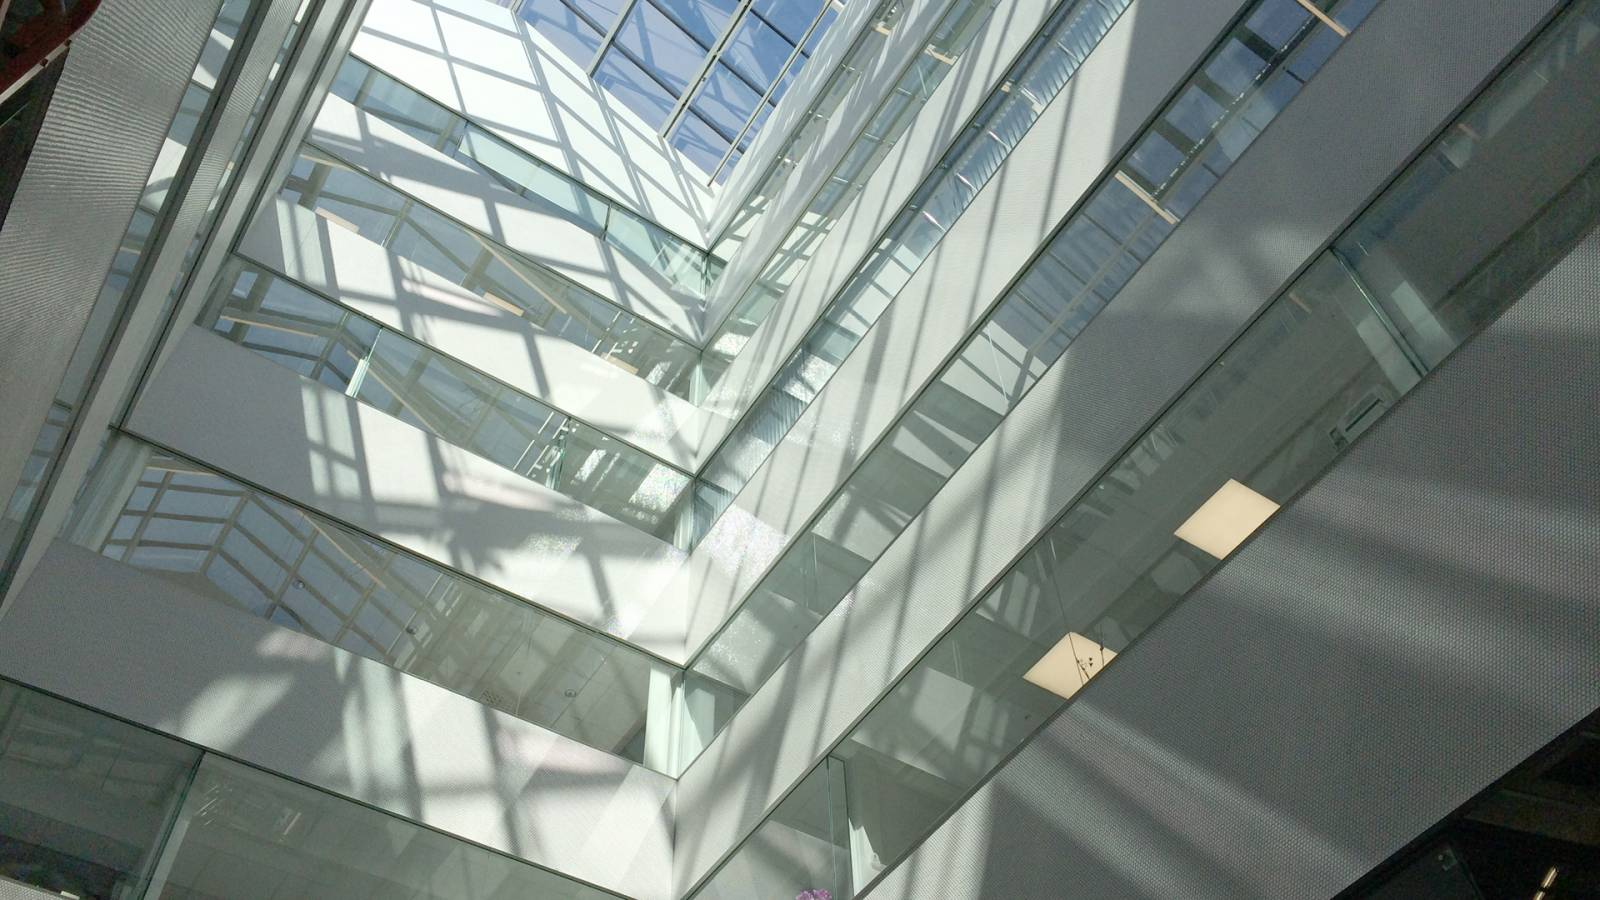 ATRIUM TOP - Akers Mek Verksted - SPOL Architects